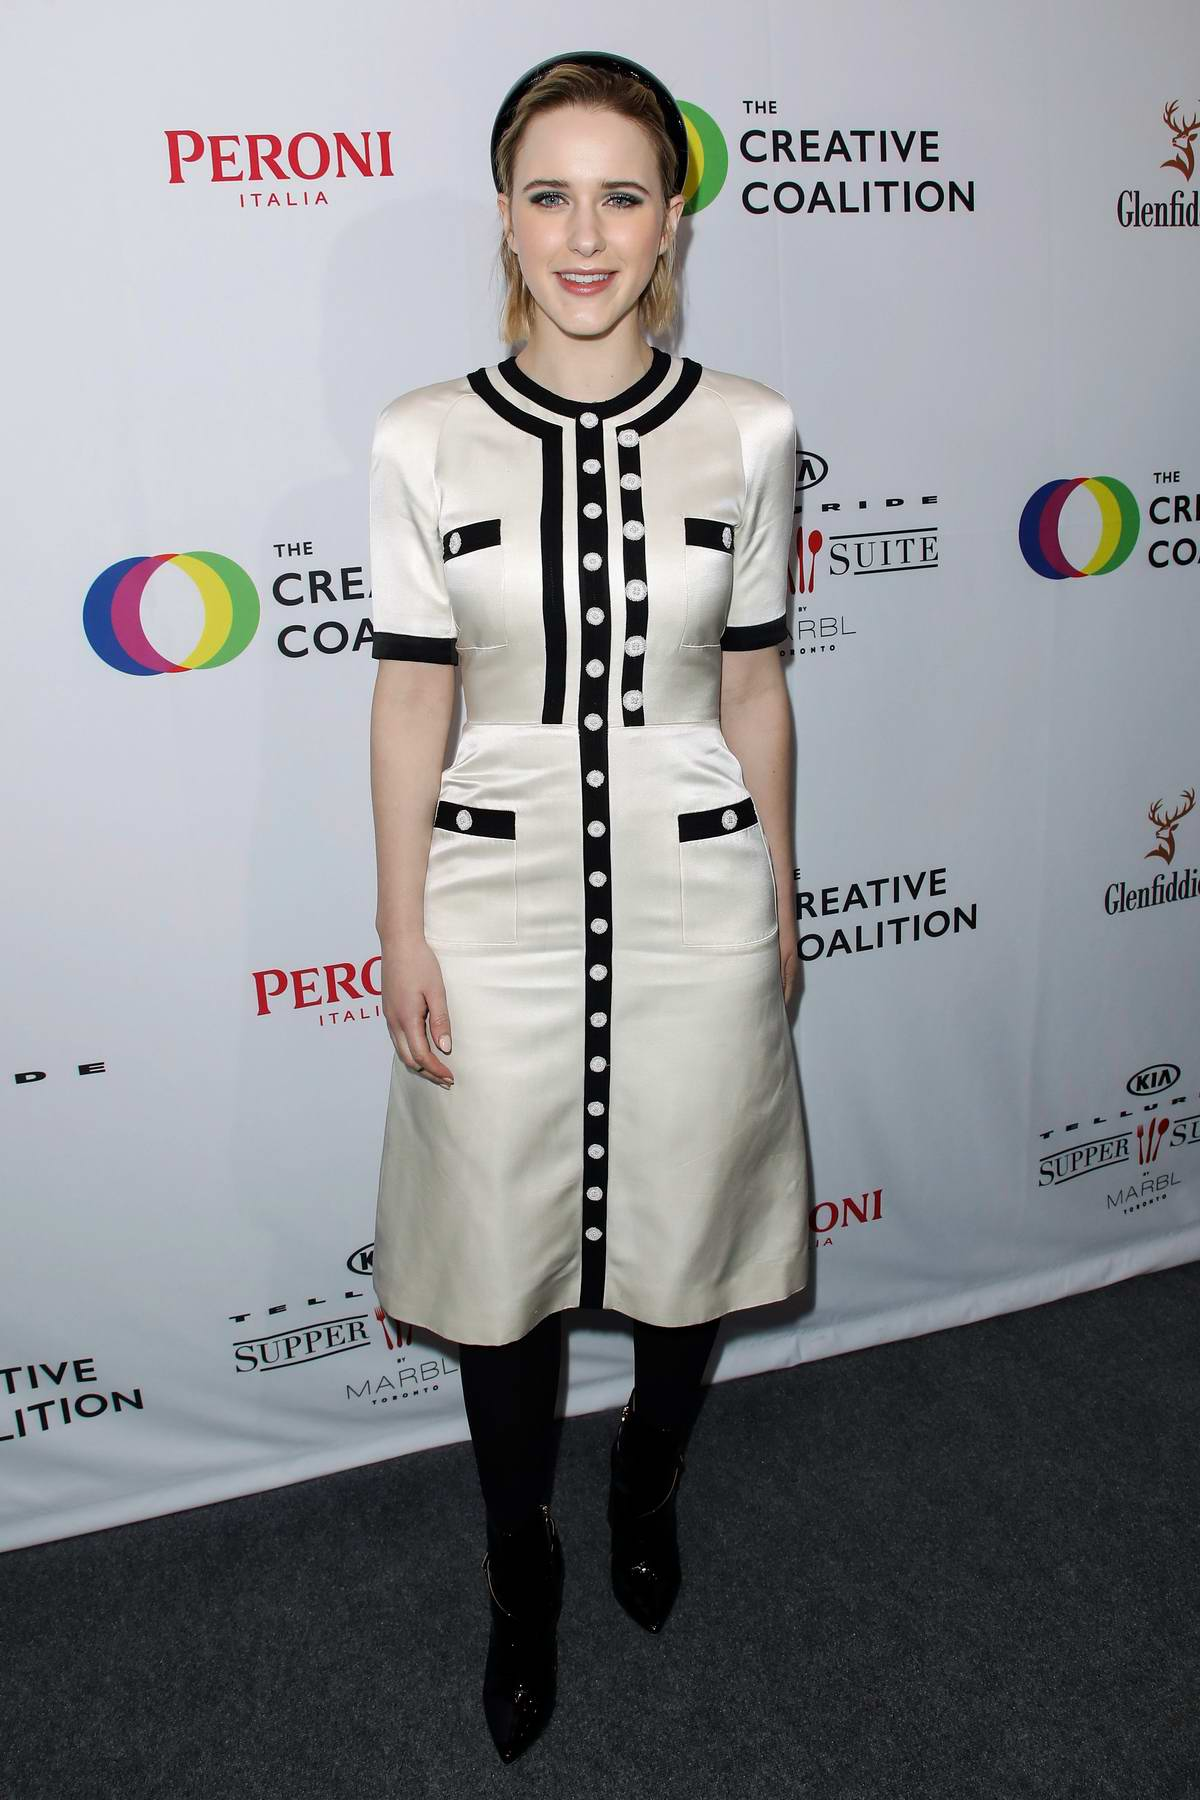 Rachel Brosnahan attends The Creative Coalition's Spotlight Initiative Gala Awards in Park City, Utah